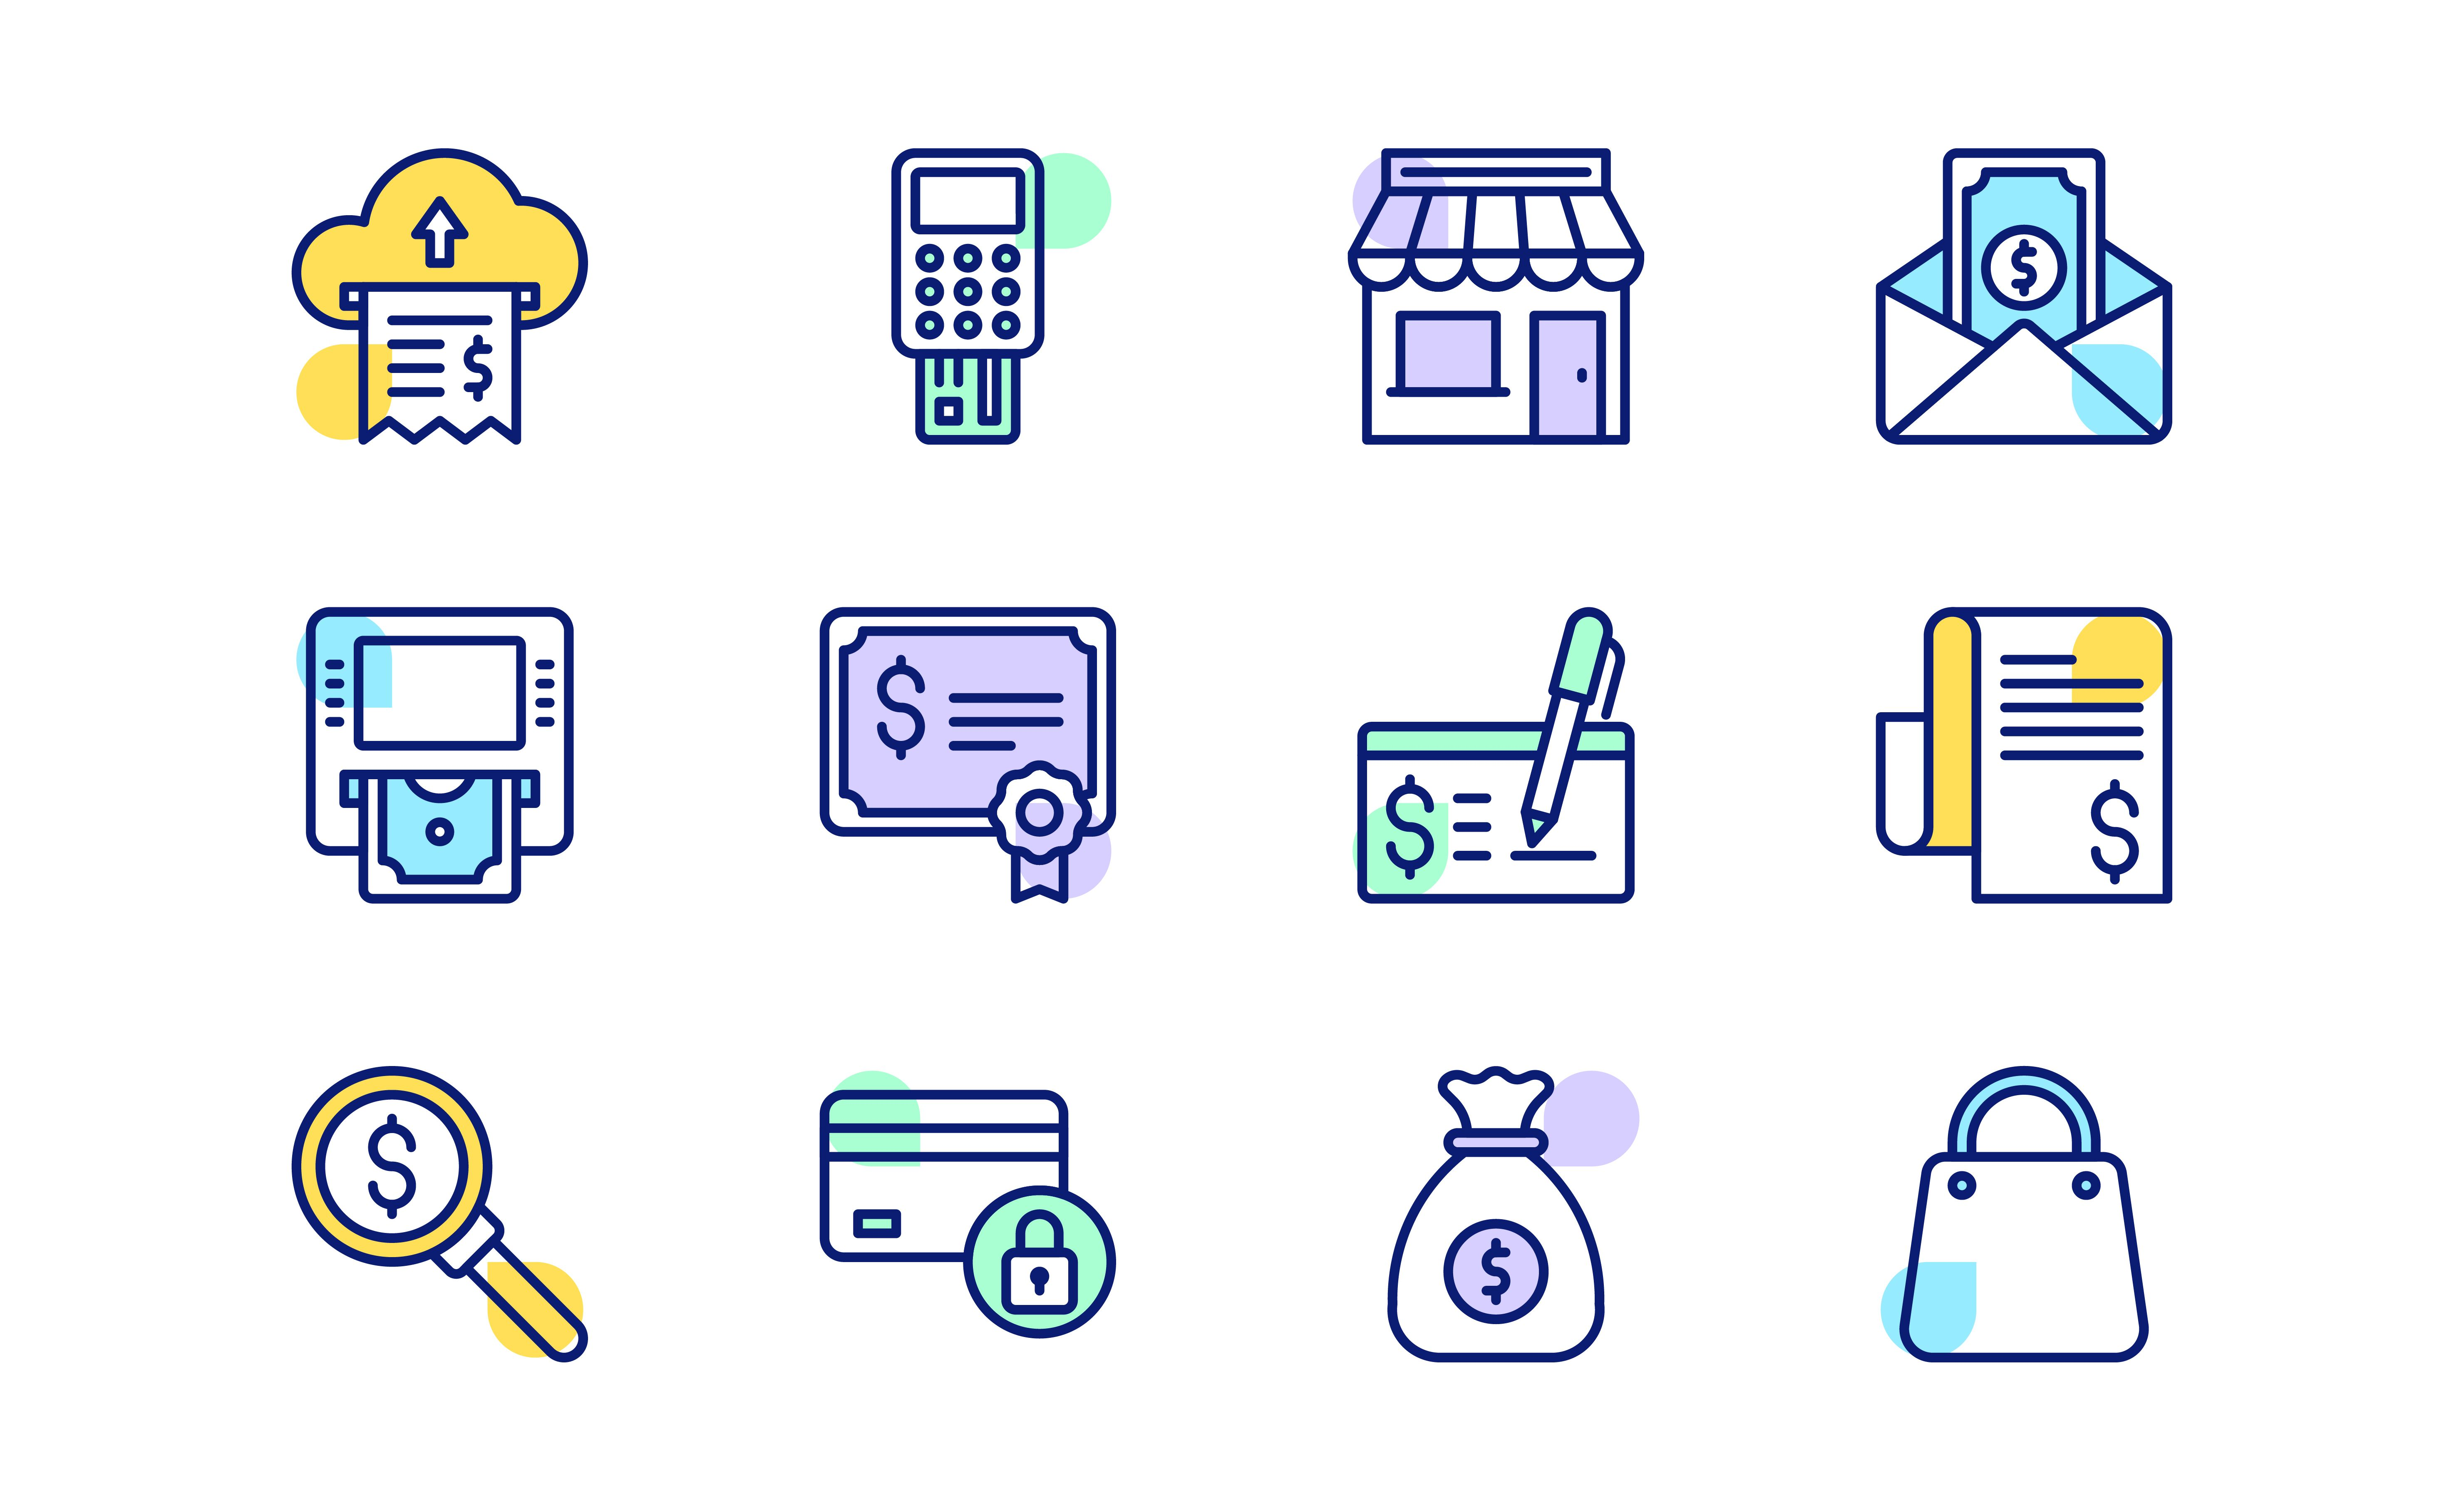 Kurniawan17 I Will Design Amazing Icon Set With Flat Line Style For You For 5 On Fiverr Com In 2020 Business Icon Custom Icons Icon Set